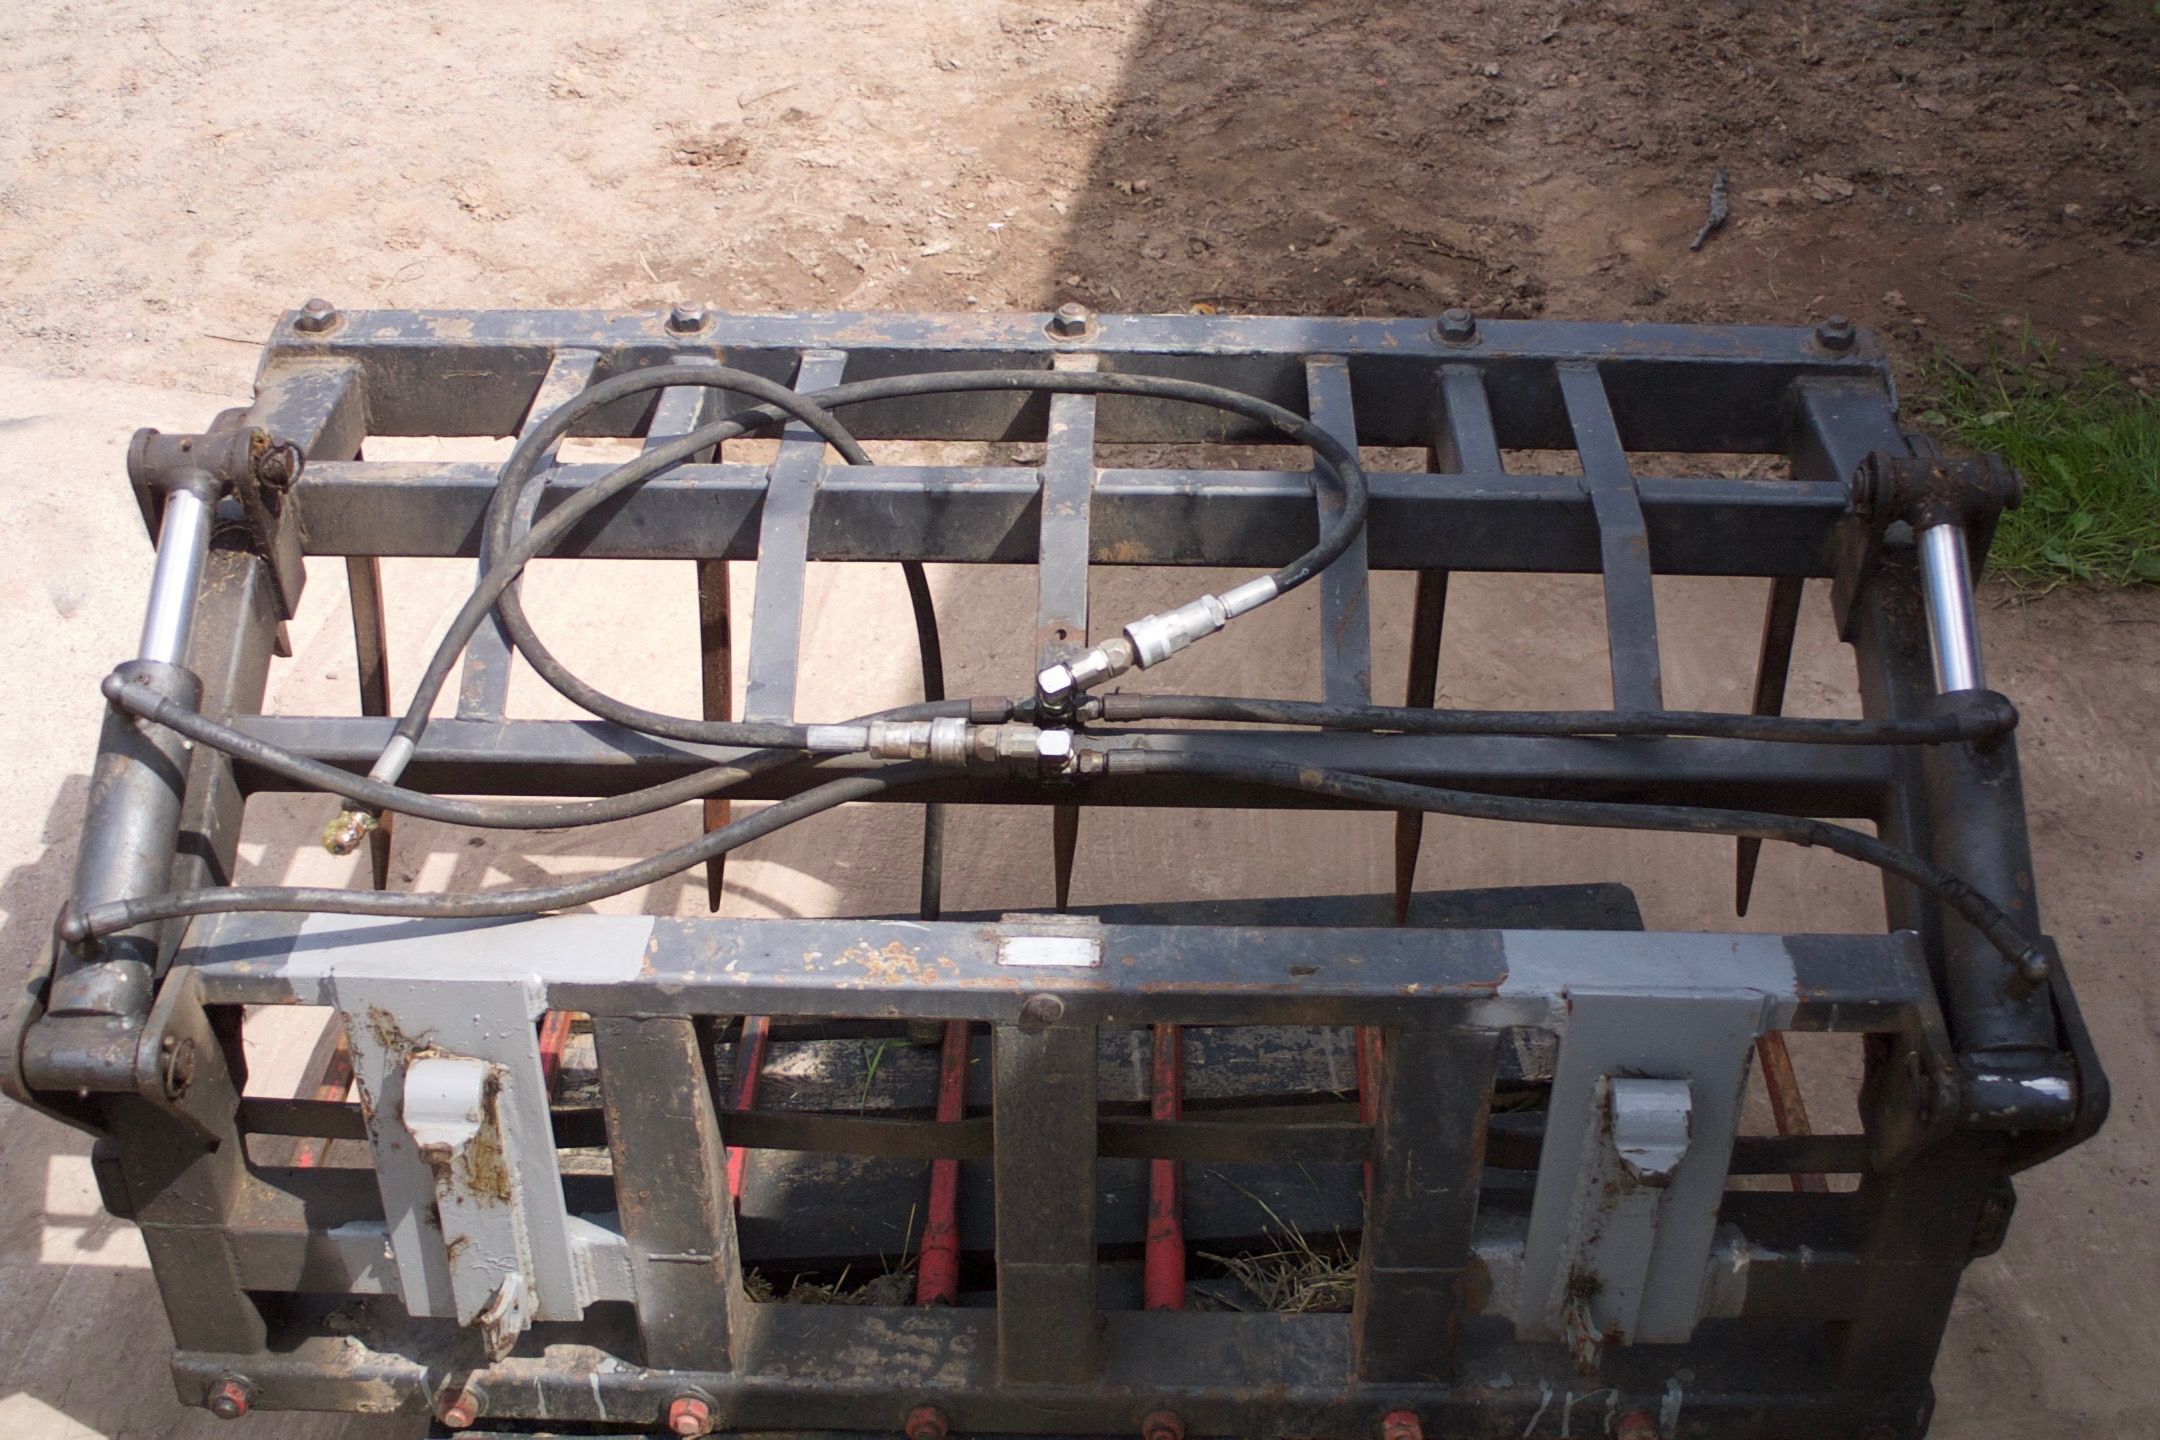 Fitted with Conus Bushed Tines and hydraulic pipes